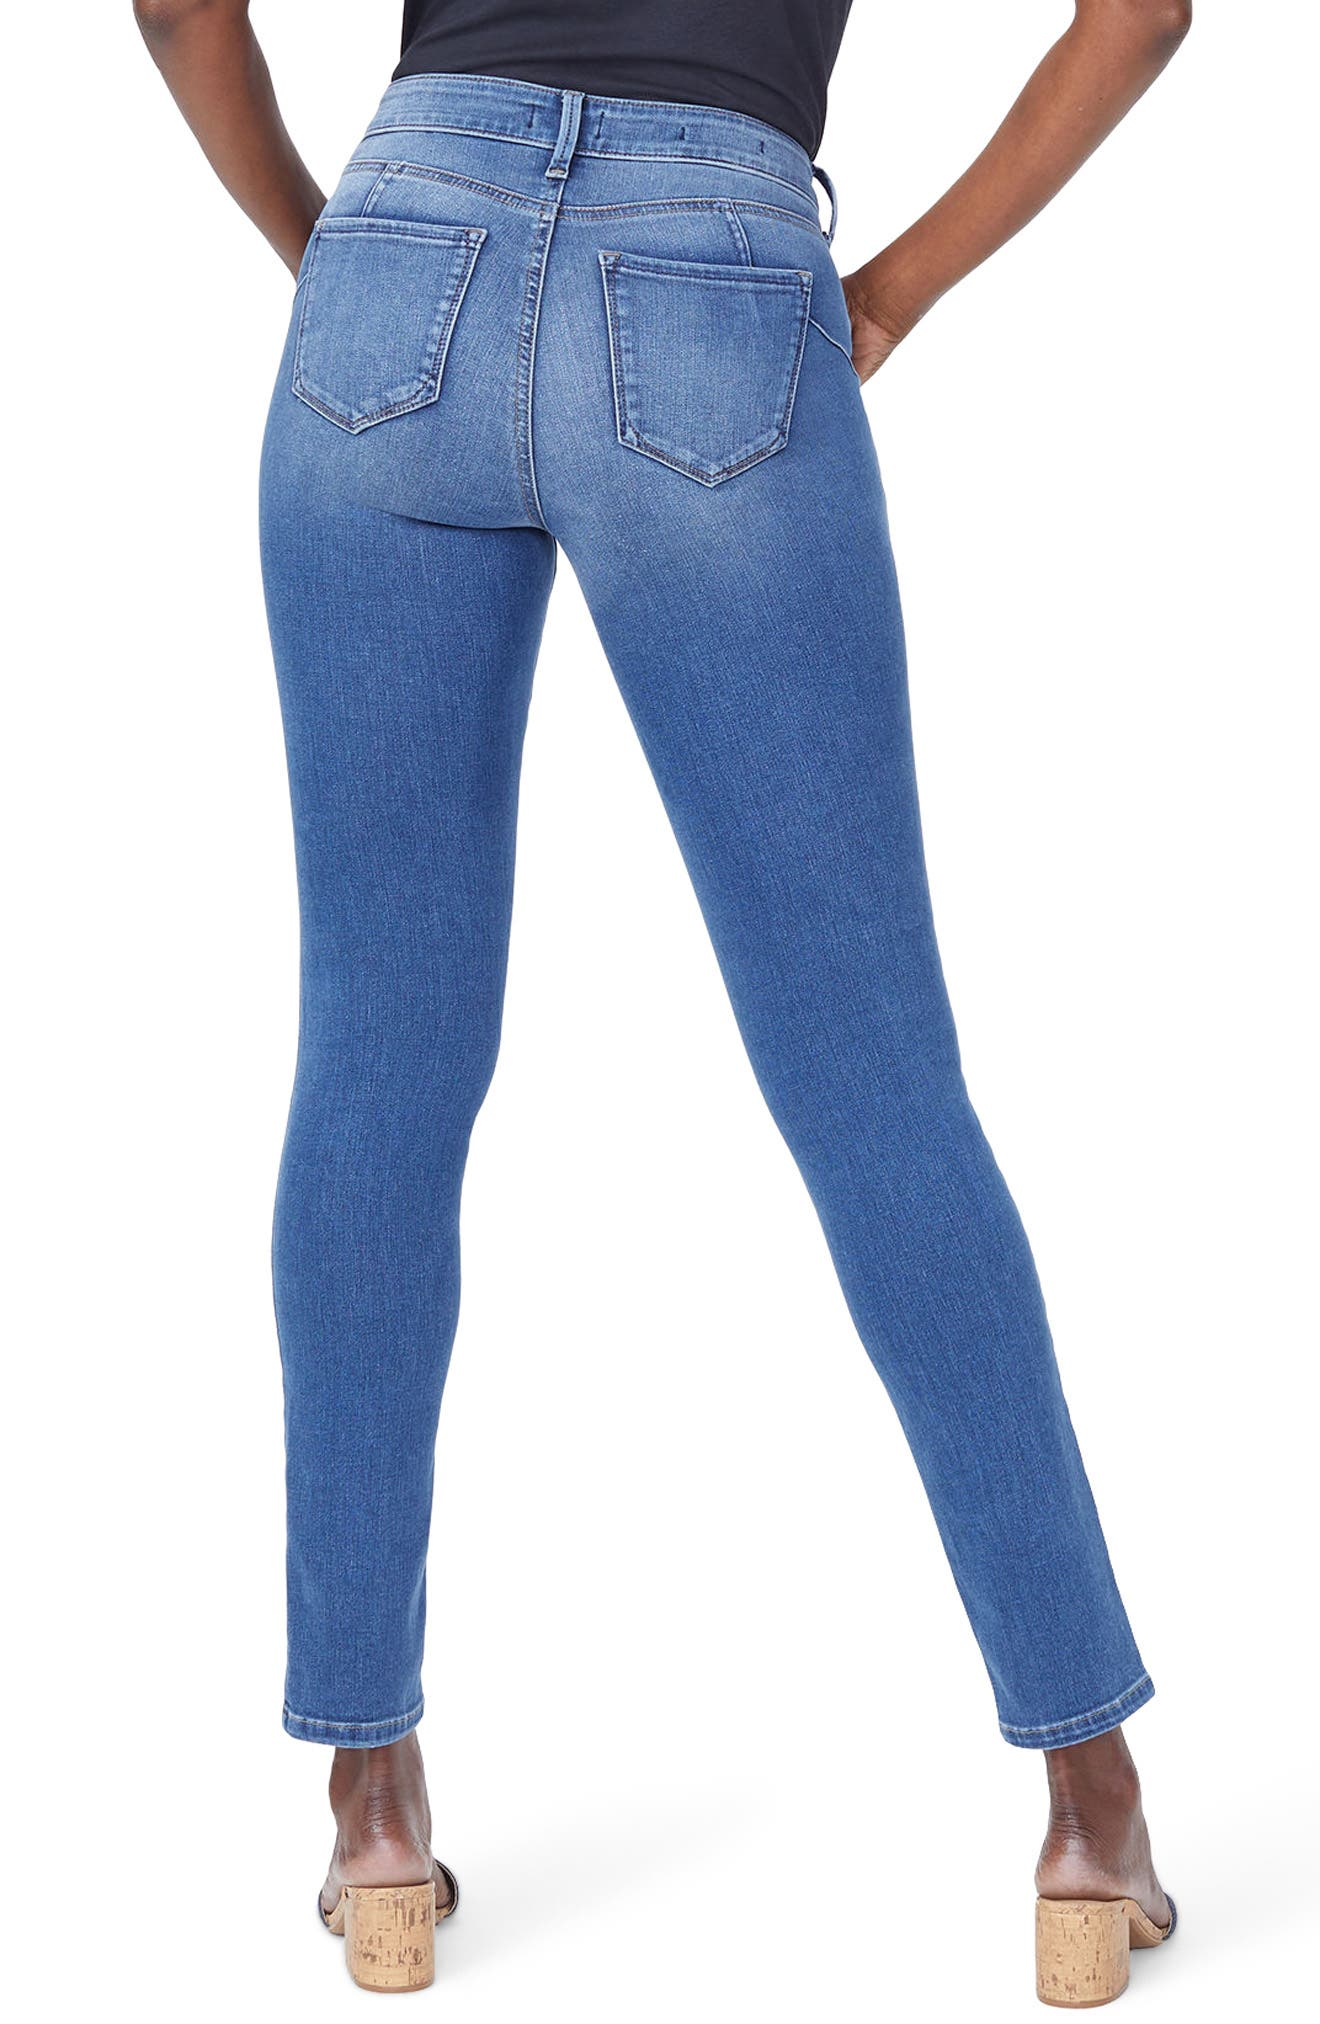 Alina High Waist Uplift Skinny Jeans,                             Alternate thumbnail 2, color,                             419